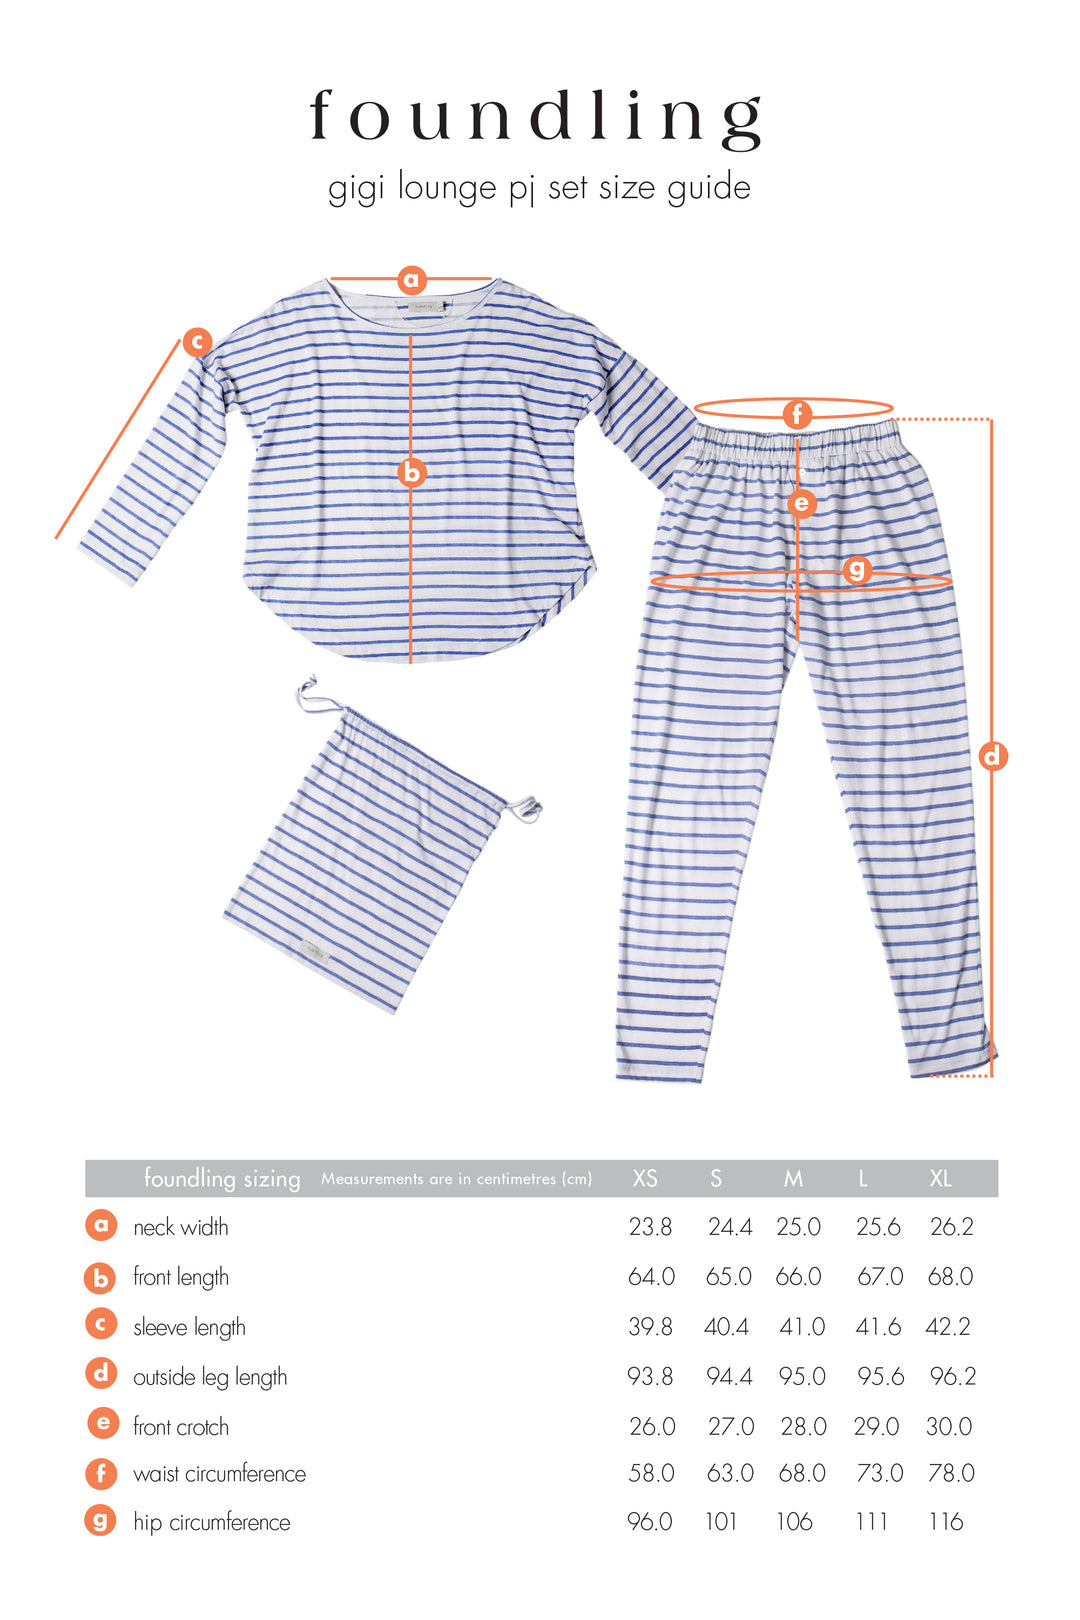 Gigi Lounge PJ set